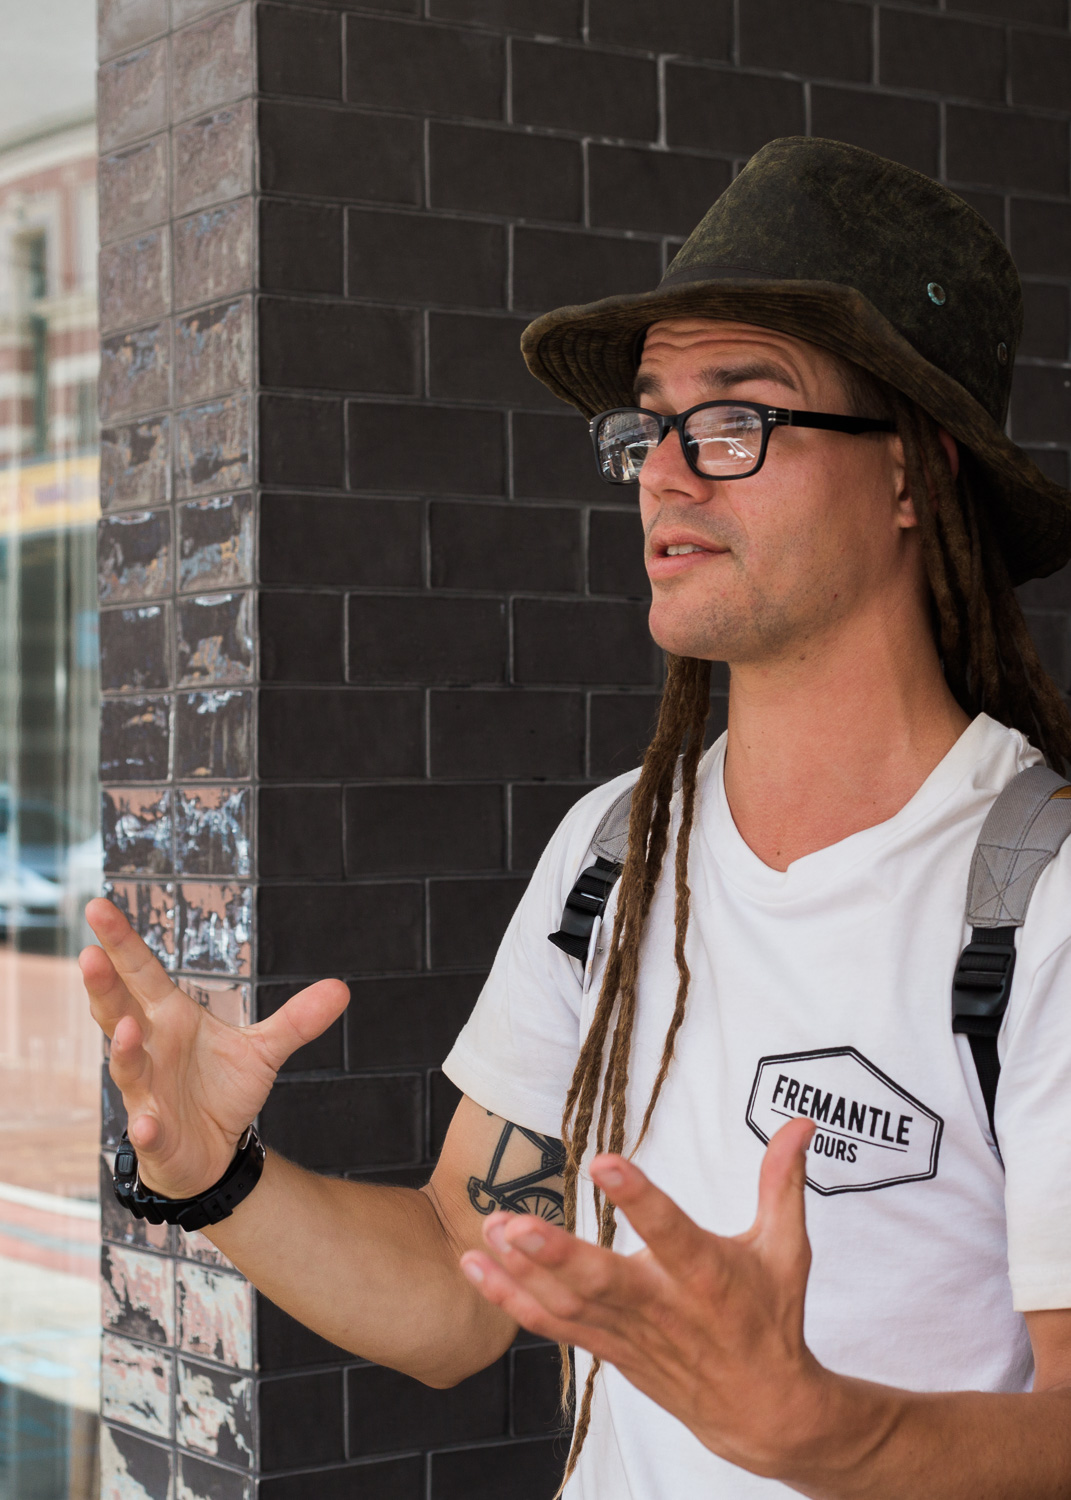 Michael from Fremantle Tours shares what he loves about Fremantle.